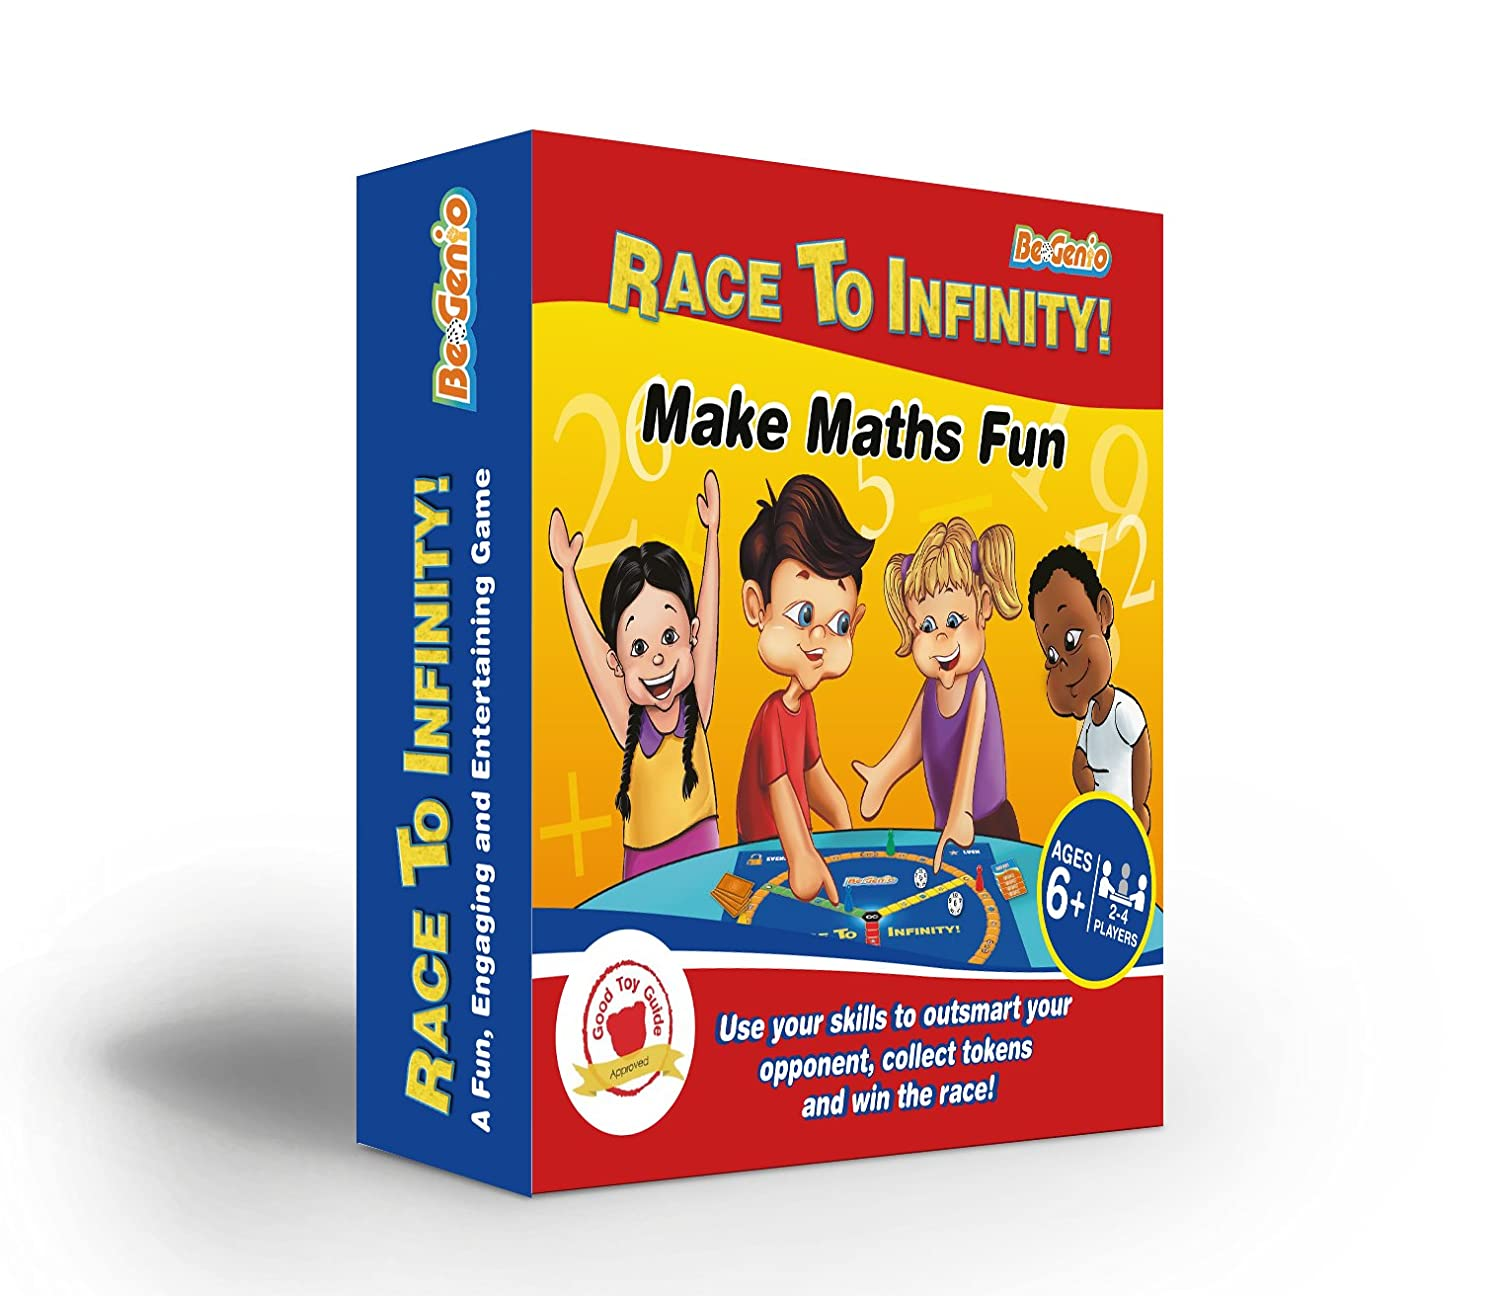 Maths Games for kids, KS2, KS1, KS3 - RACE TO INFINITYTM- FUN Math ...